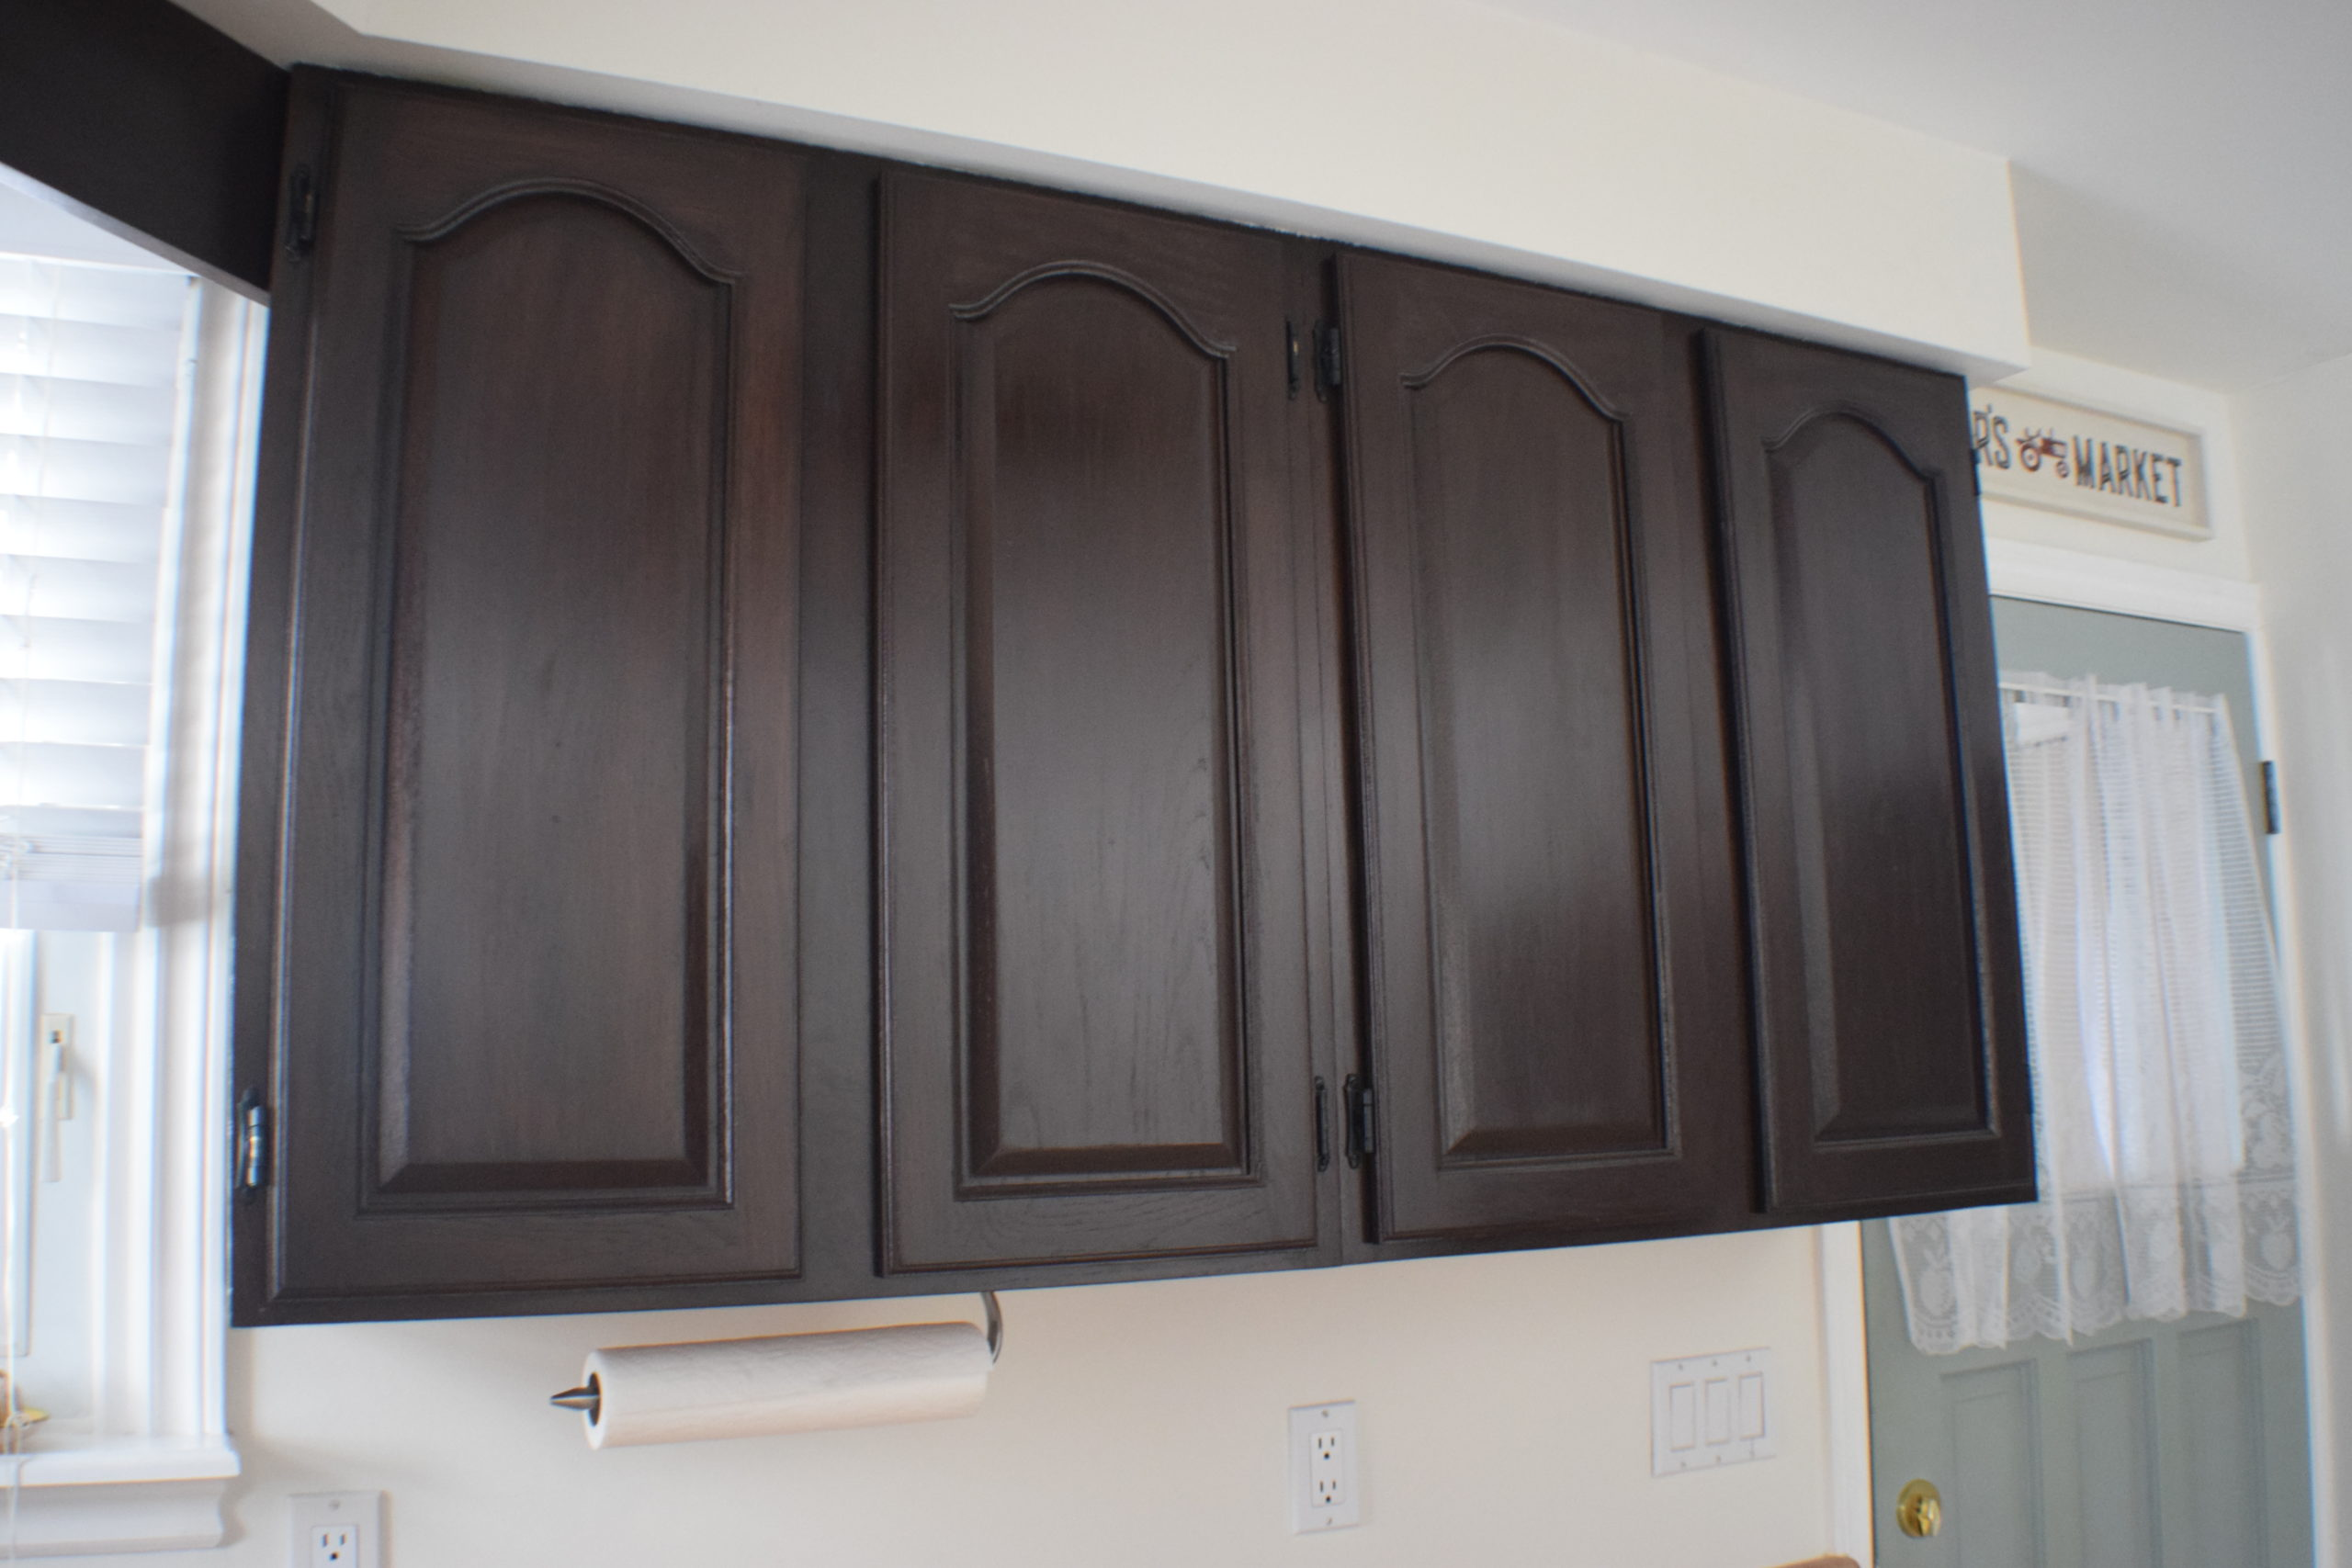 for of upper kitchen cabinets in dark stain without handles